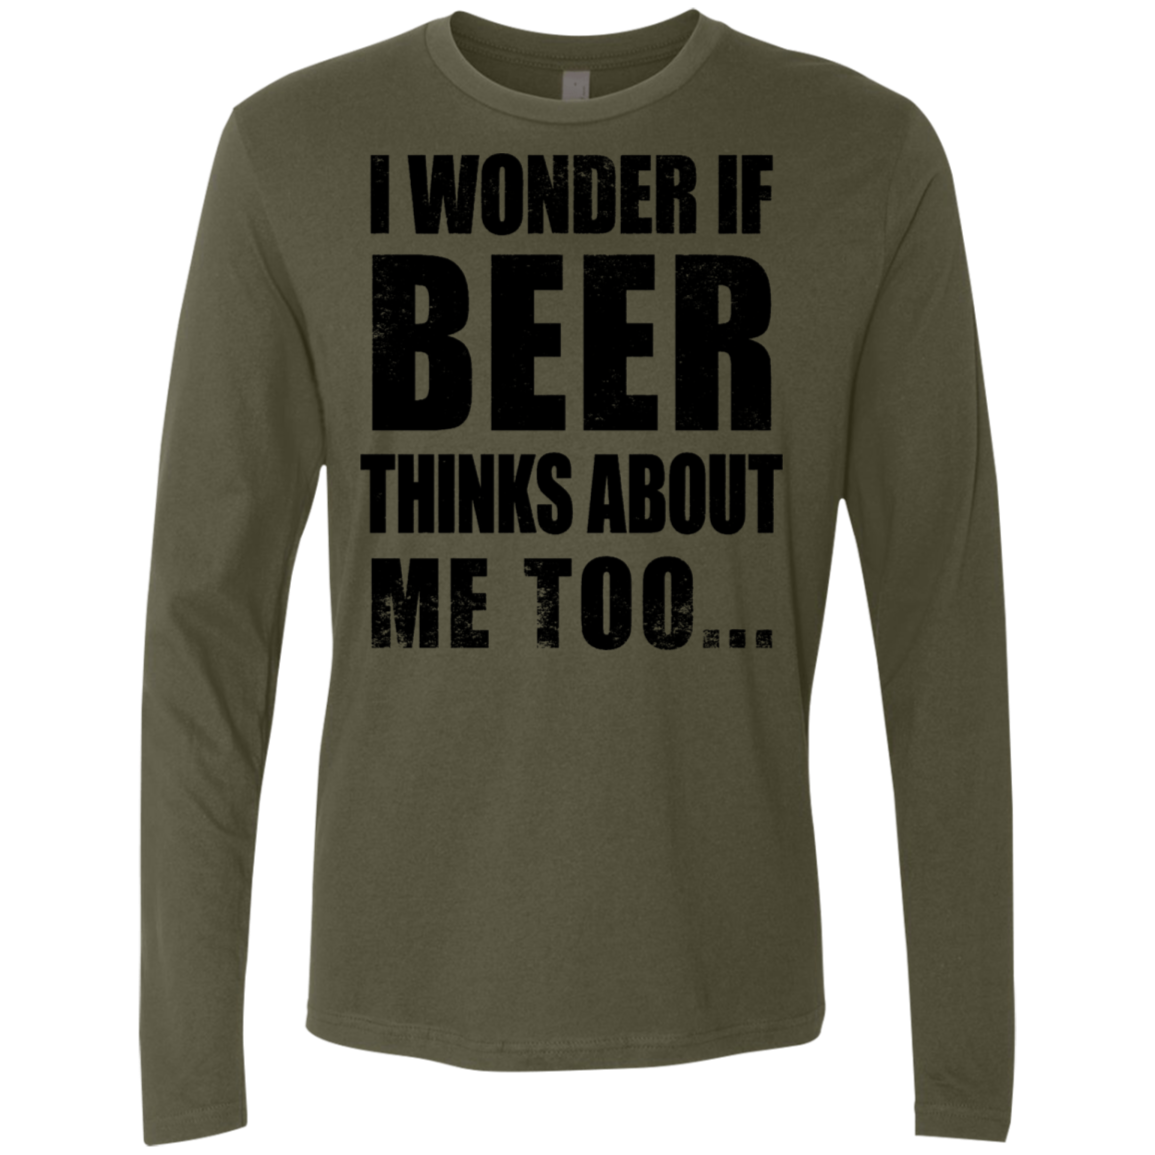 I Wonder if Beer Thinks About Me Too Men's Long Sleeve Tee